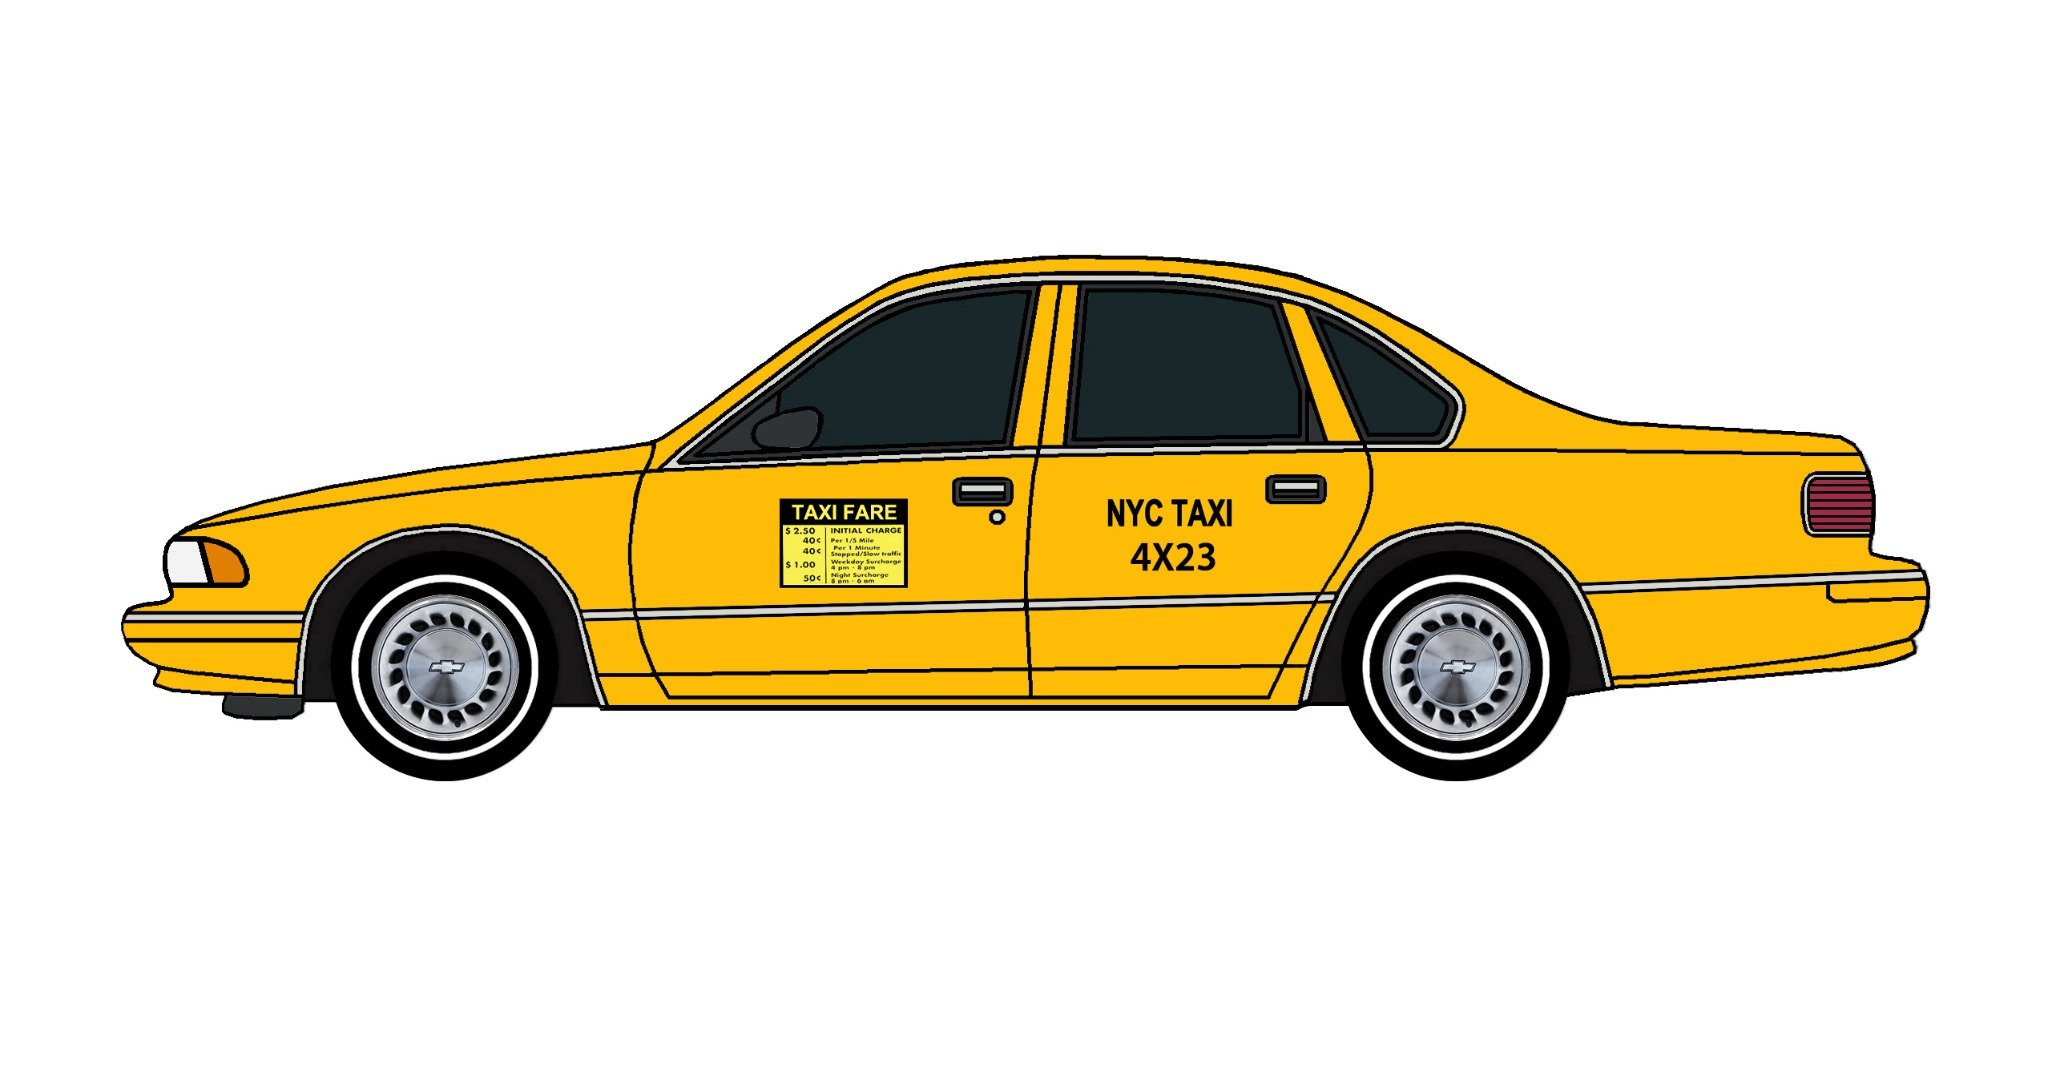 1996 Chevy Caprice NYC TAXI